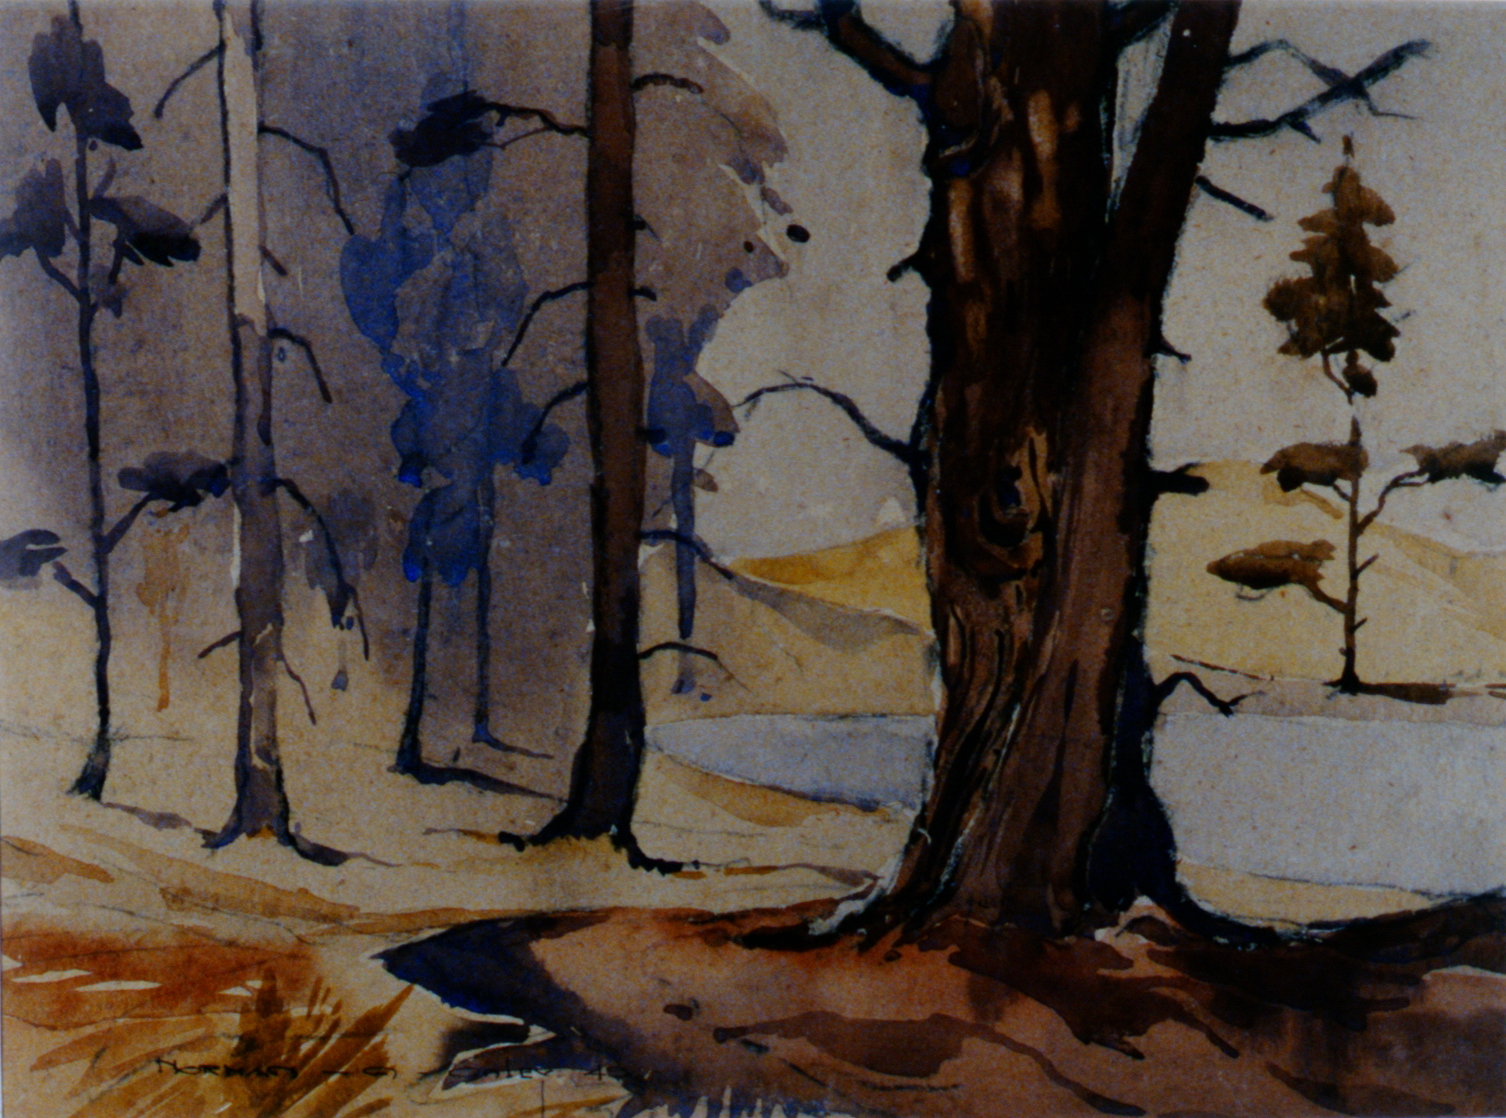 Near Galt  , Ontario , 1949, Toni Onley, watercolour on grey card stock, 29 cm x 39 cm, 2002.07.01. Gift of Katherine Lytle.